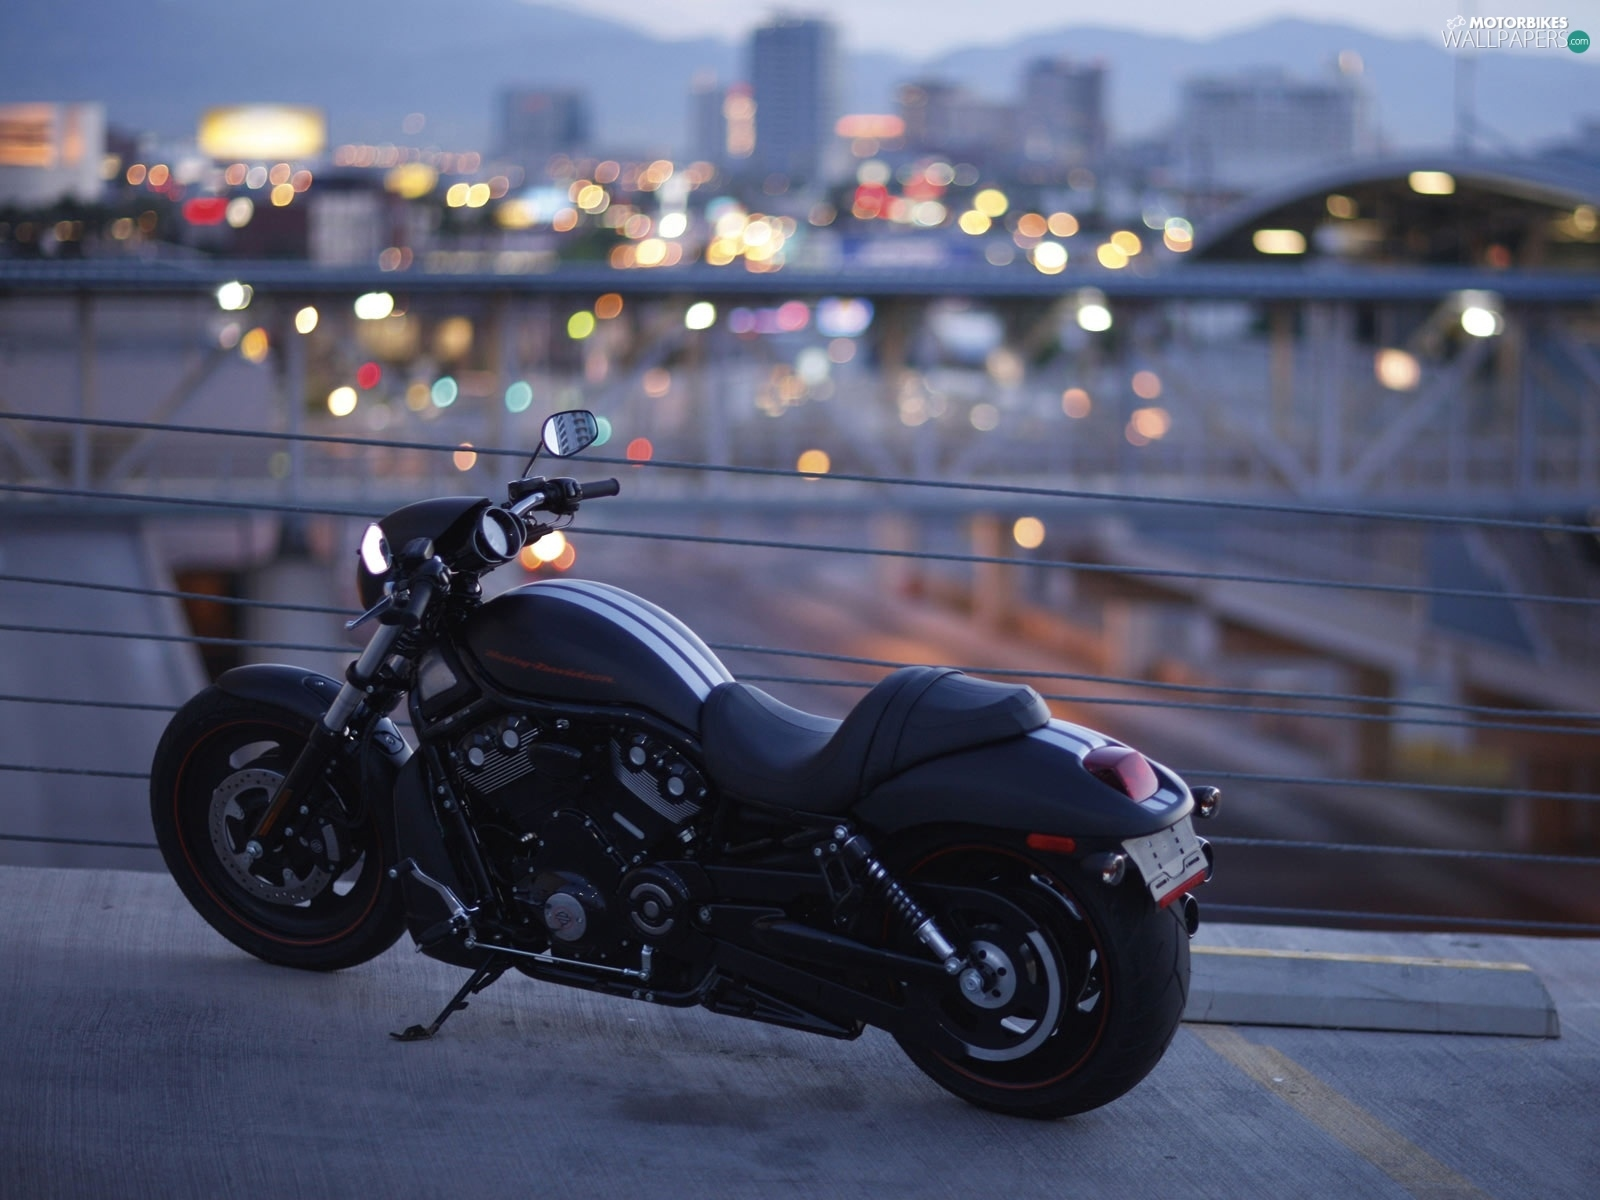 Belts Harley Davidson Night Rod Special White Motorbikes Wallpapers 1600x1200